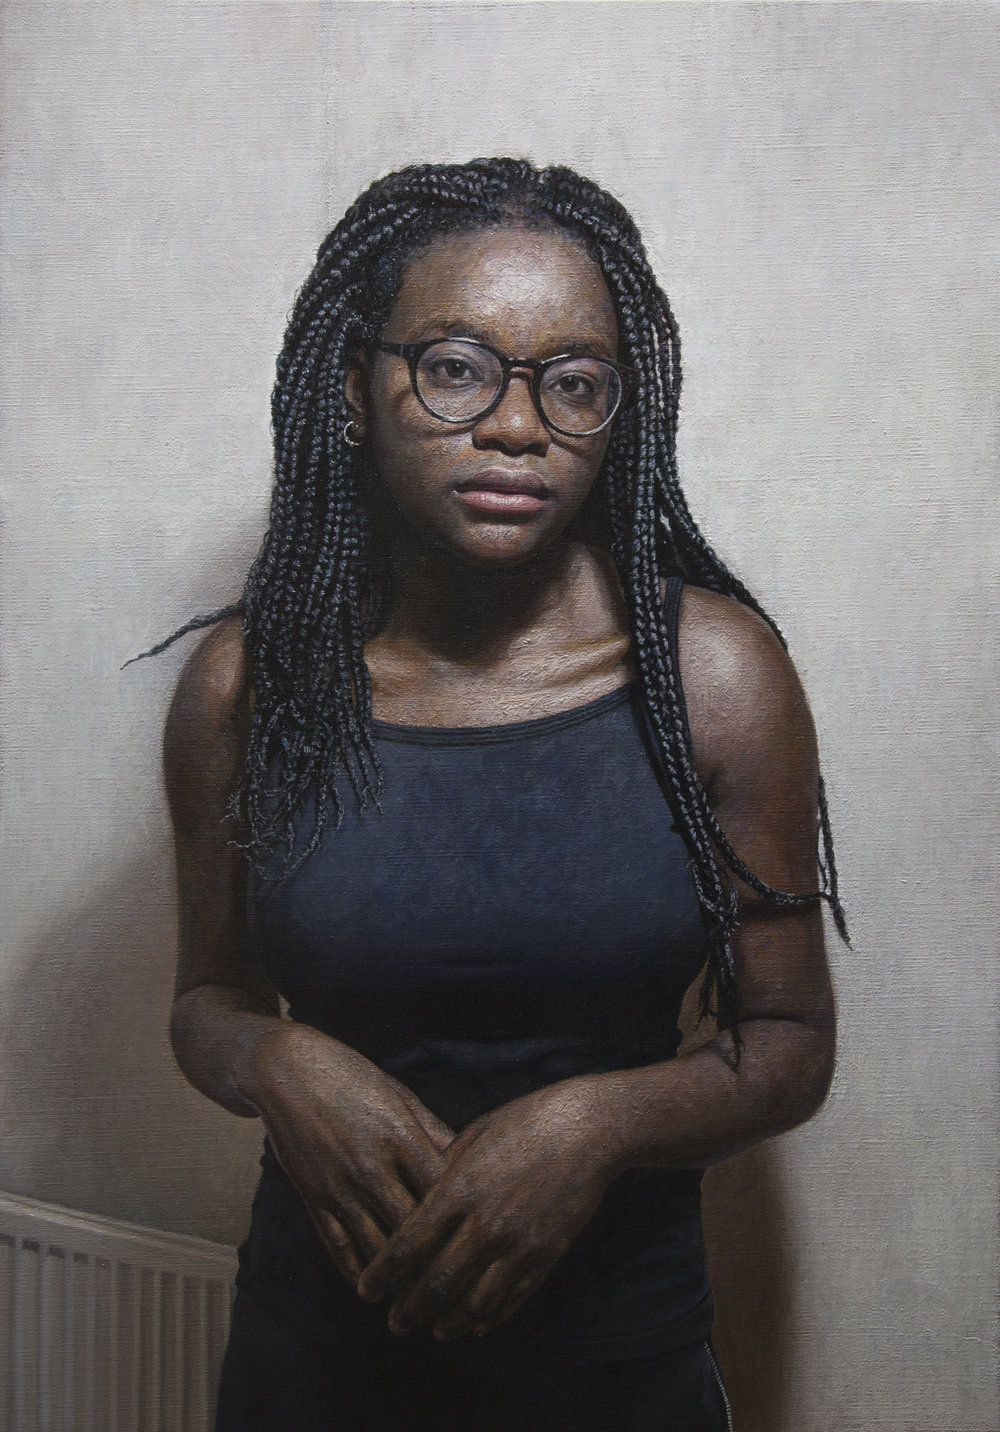 Winner of the Jackson's Open Painting Prize 2017: 'Eniola Sokalu' by Mark Roscoe, Oil on Linen, 26″ x 36″ inches